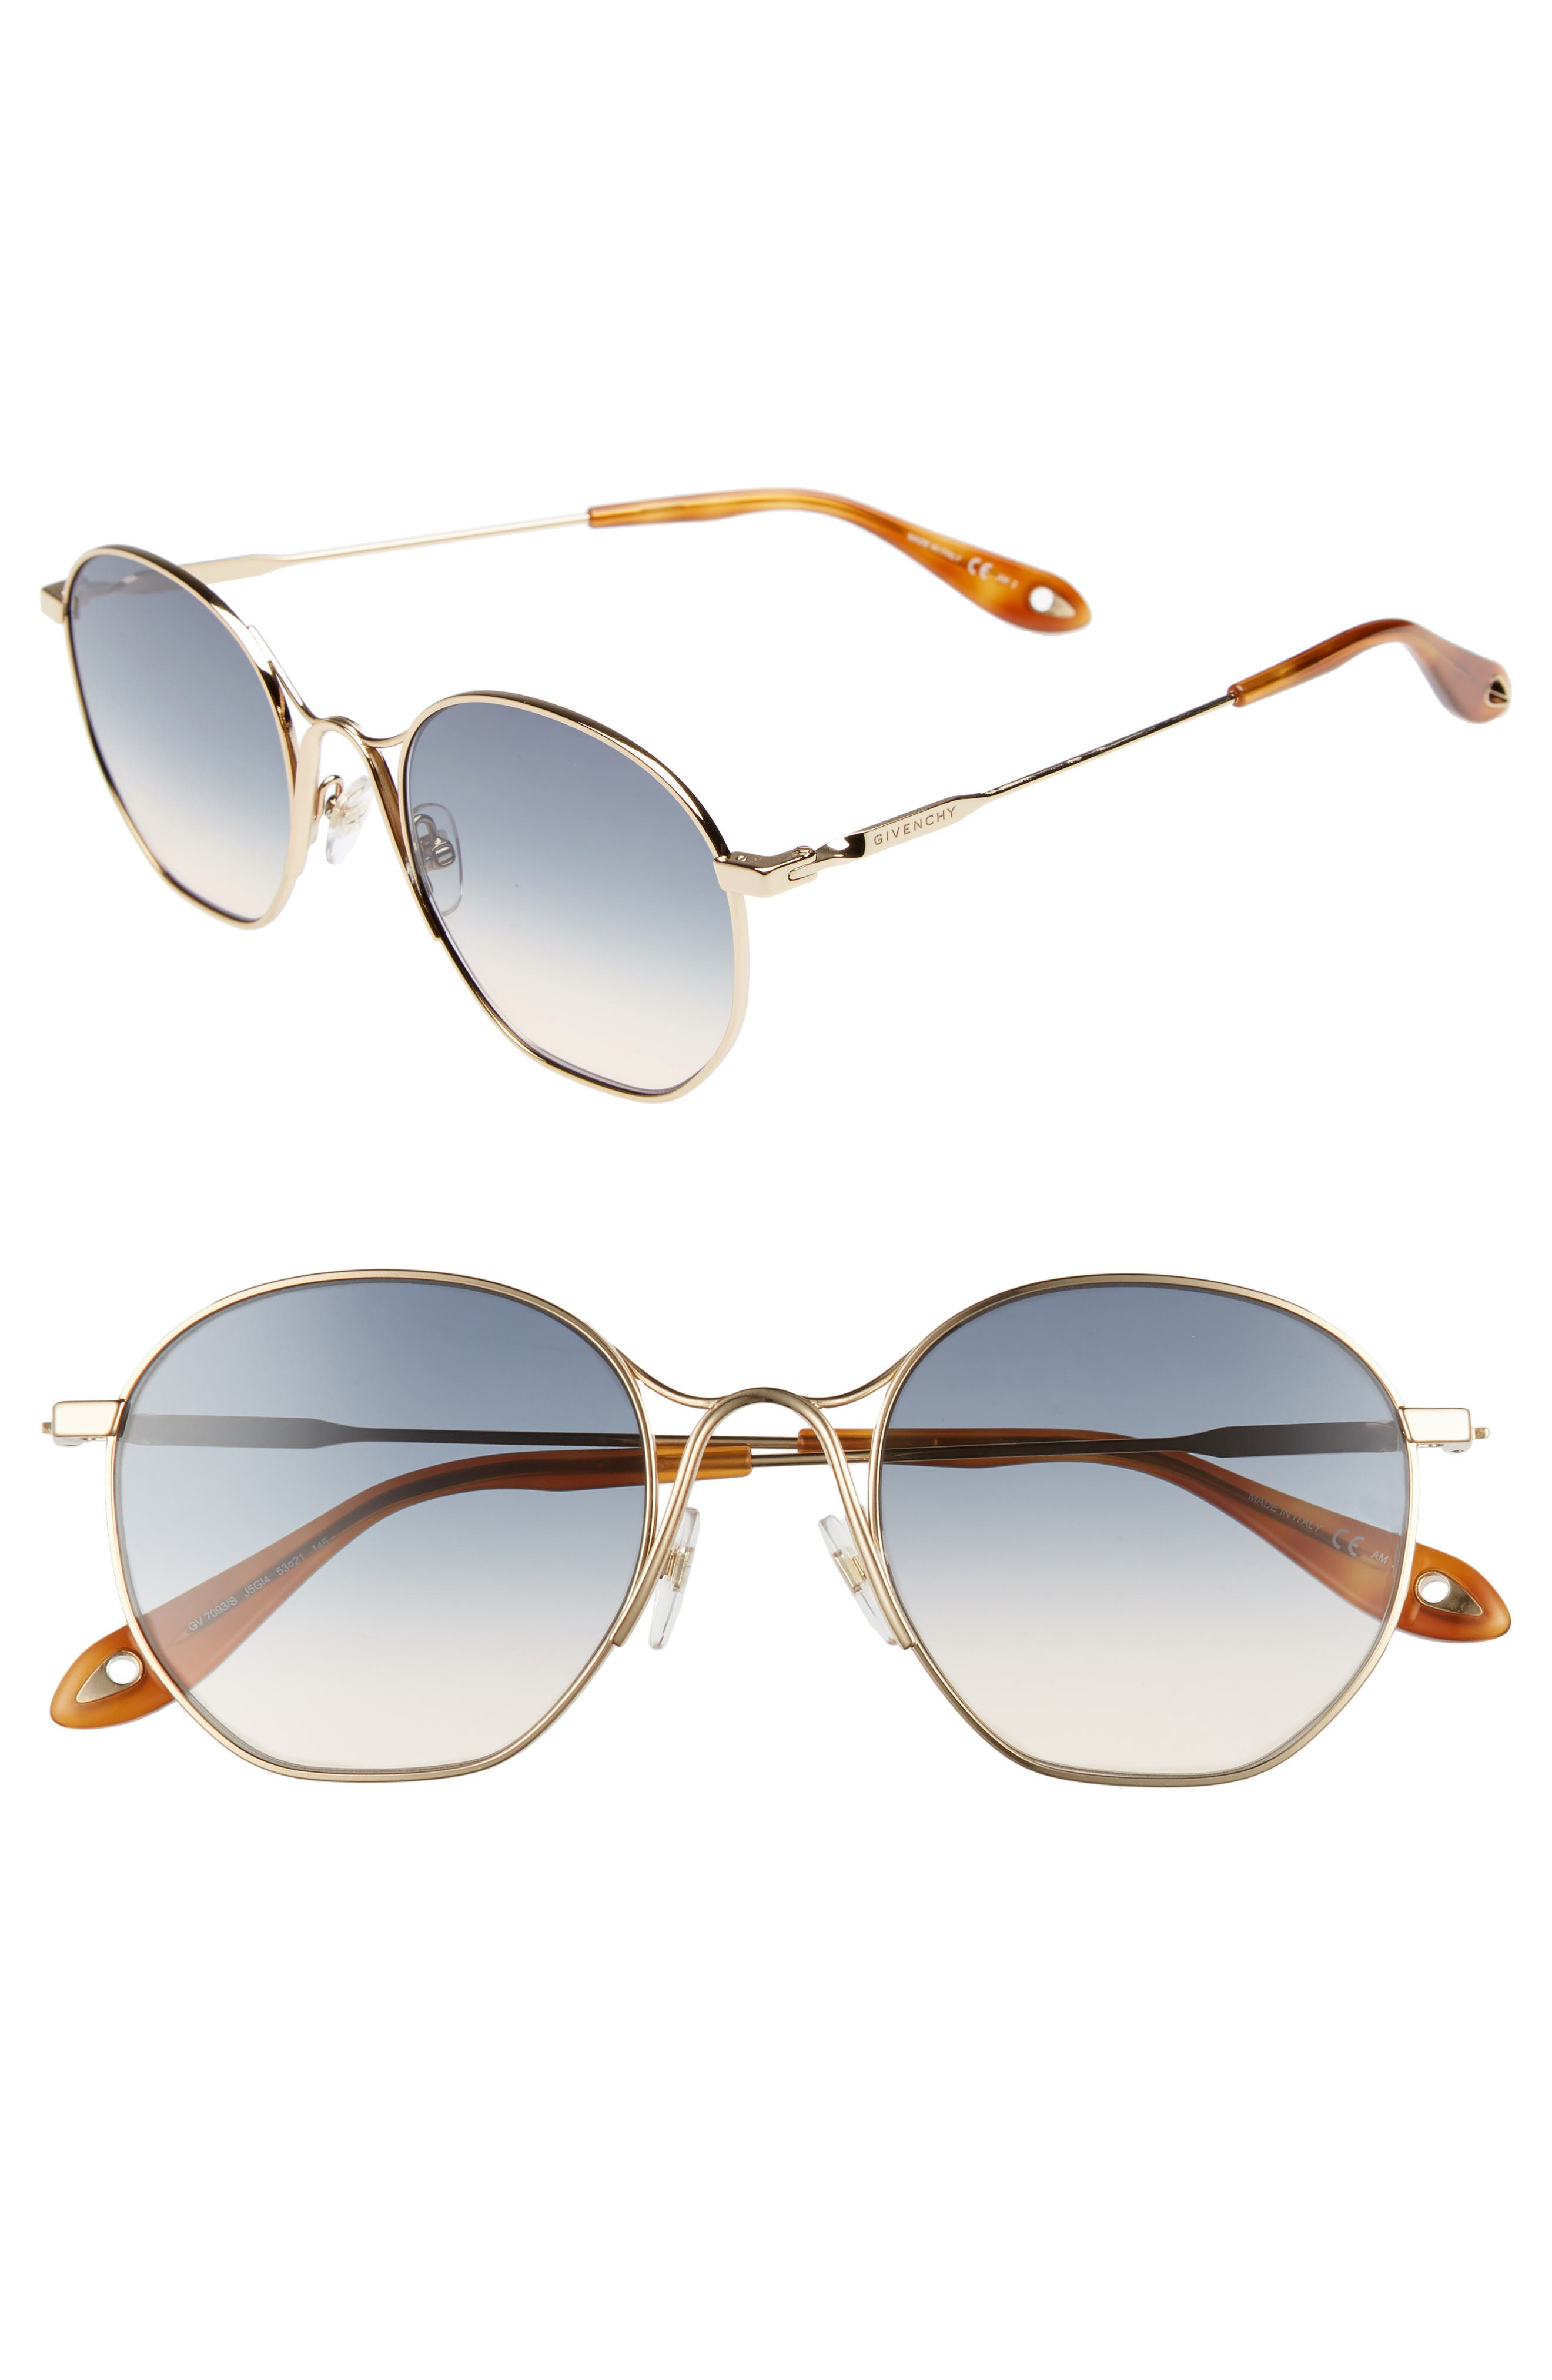 Main Image - Givenchy 53mm Squared Round Metal Sunglasses